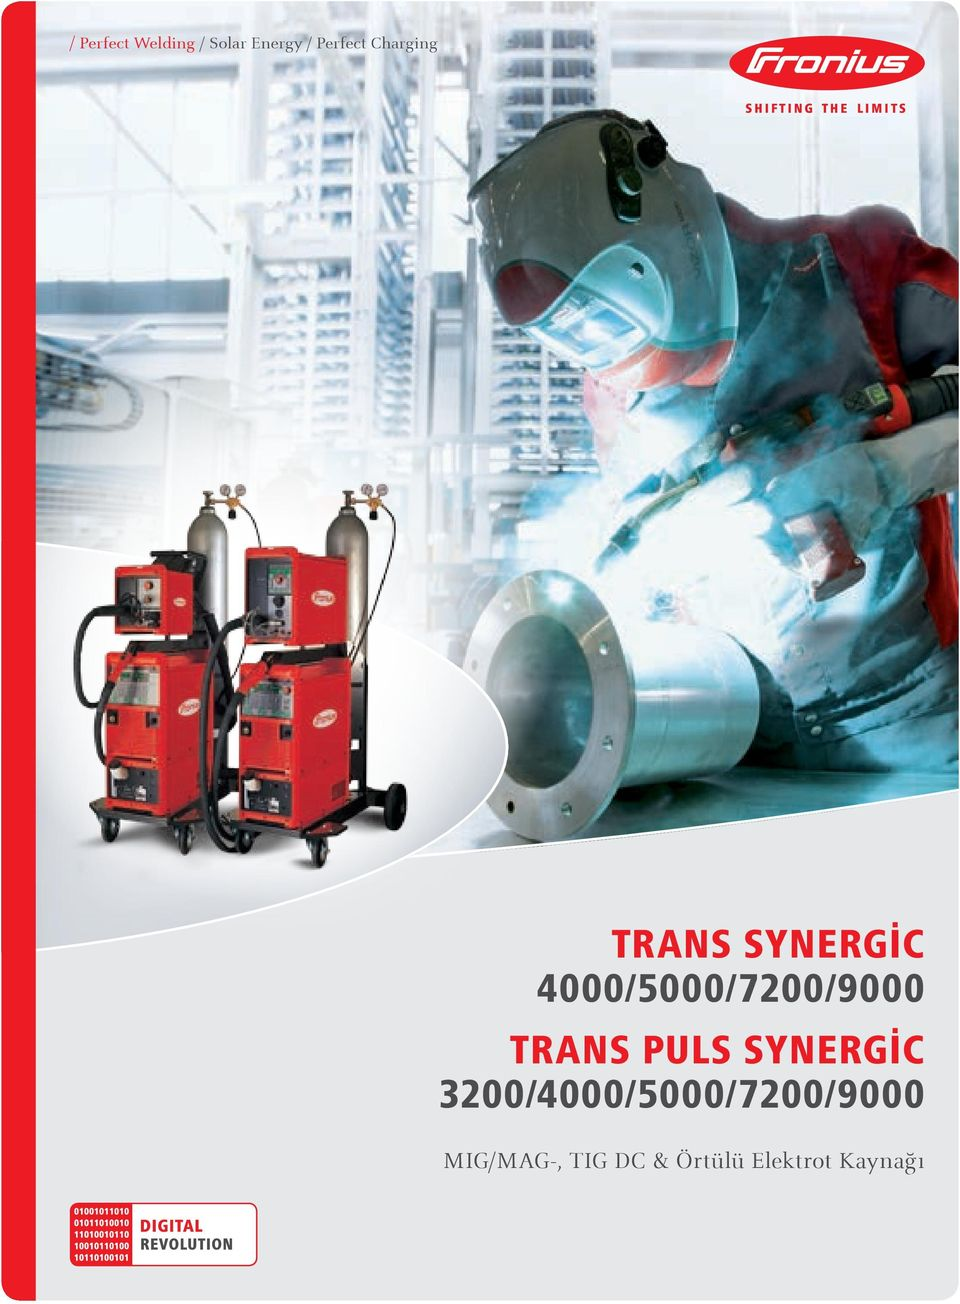 Trans Puls Synergic